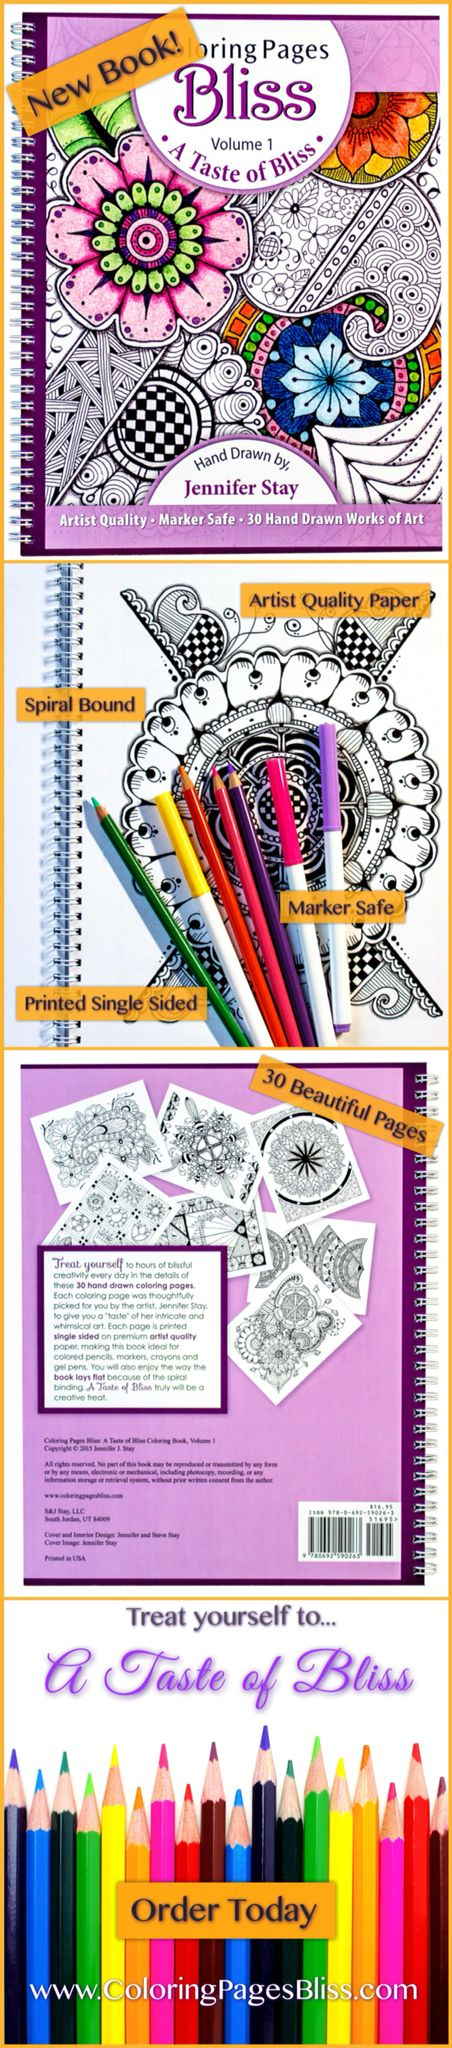 249 best images about color pencils on pinterest Coloring books for adults spiral bound